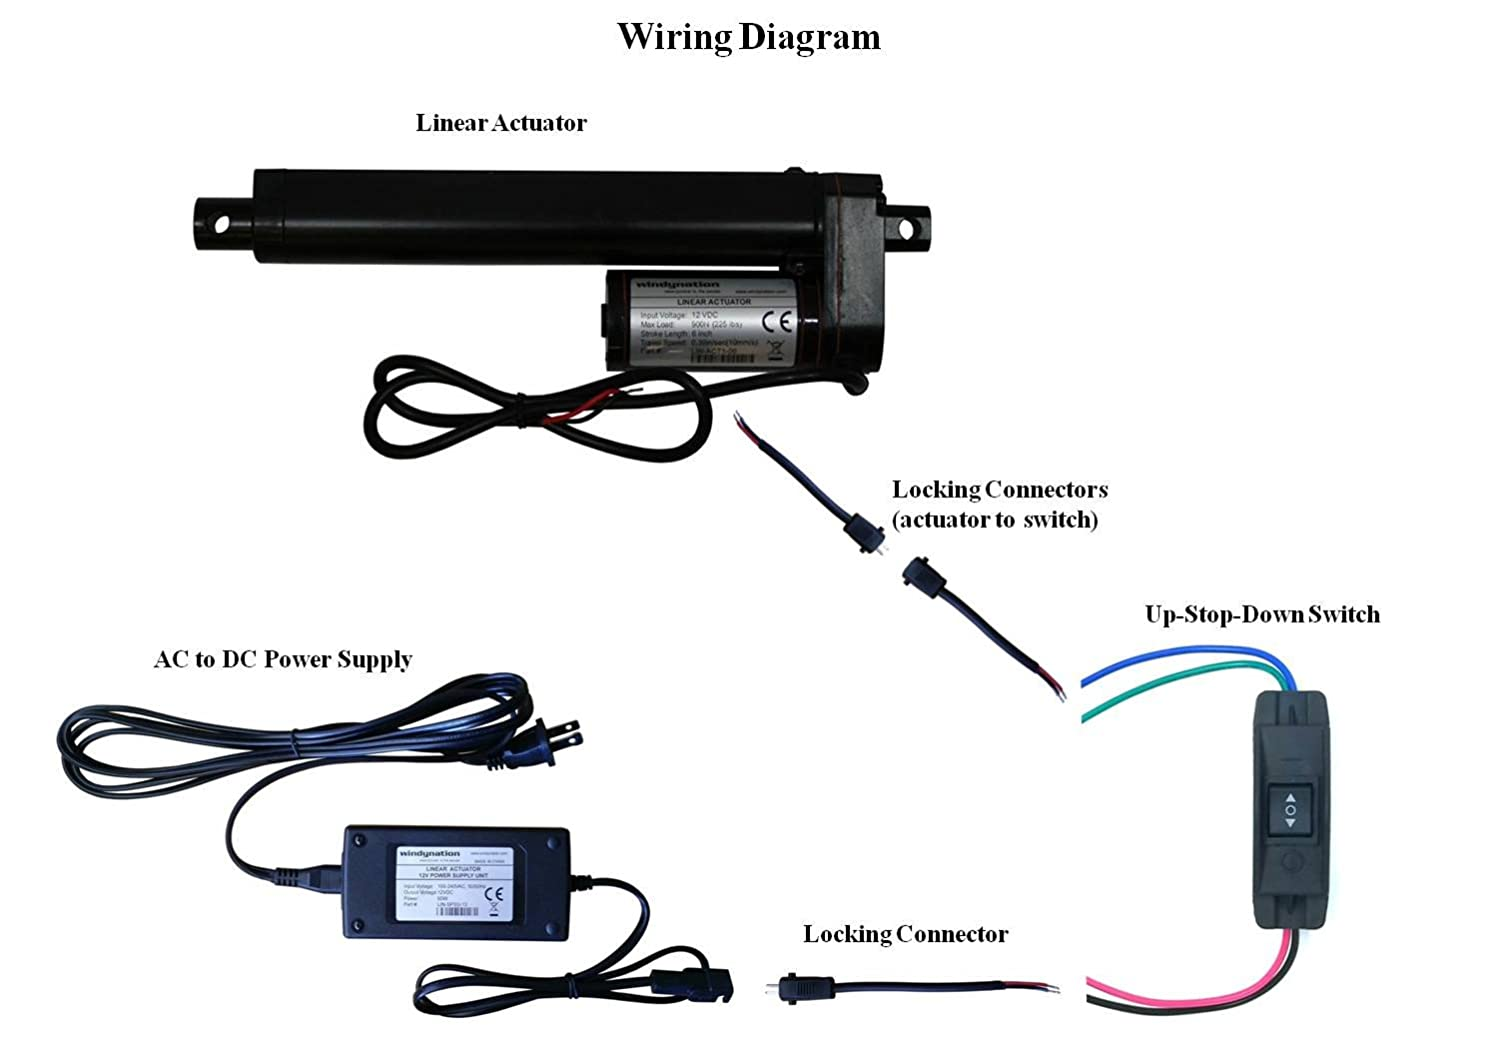 windynation 12v linear actuator + power supply + up down dpdt switch +  mounting brackets + connectors (2